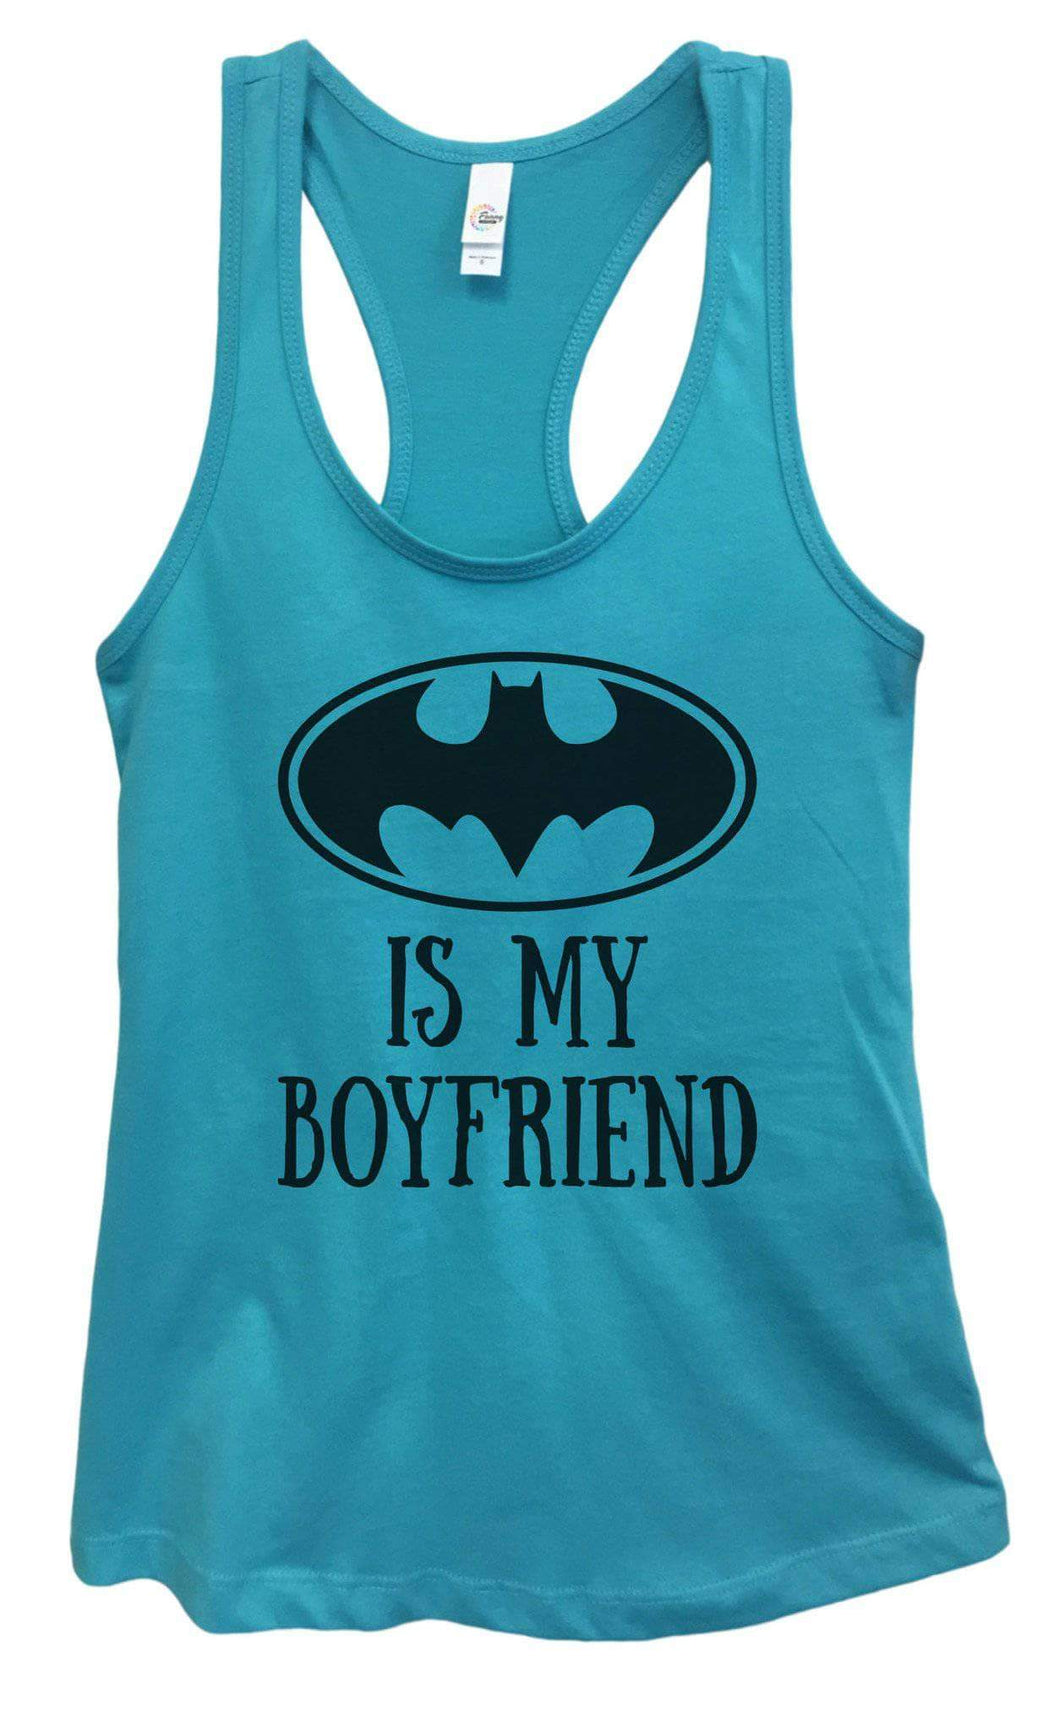 Womens Batman Is My Boyfriend Grapahic Design Fitted Tank Top Small Womens Tank Tops Sky Blue